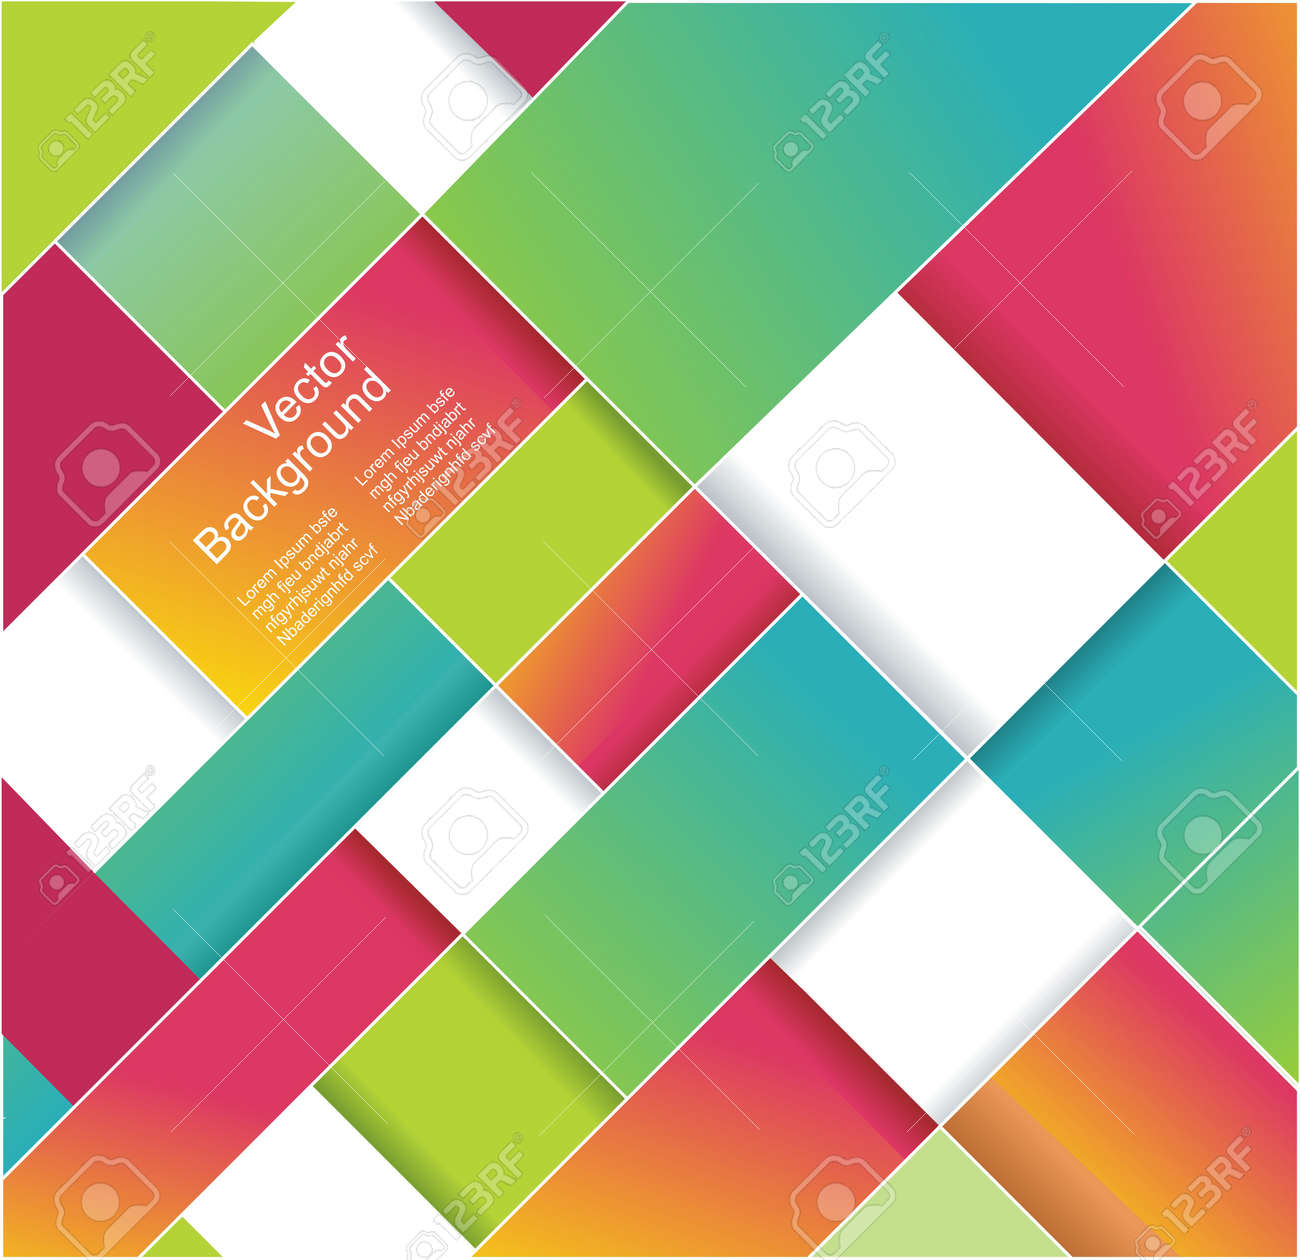 Poster design template free - Print Poster Design Template Book Cover Background Design Graphics Lay Out